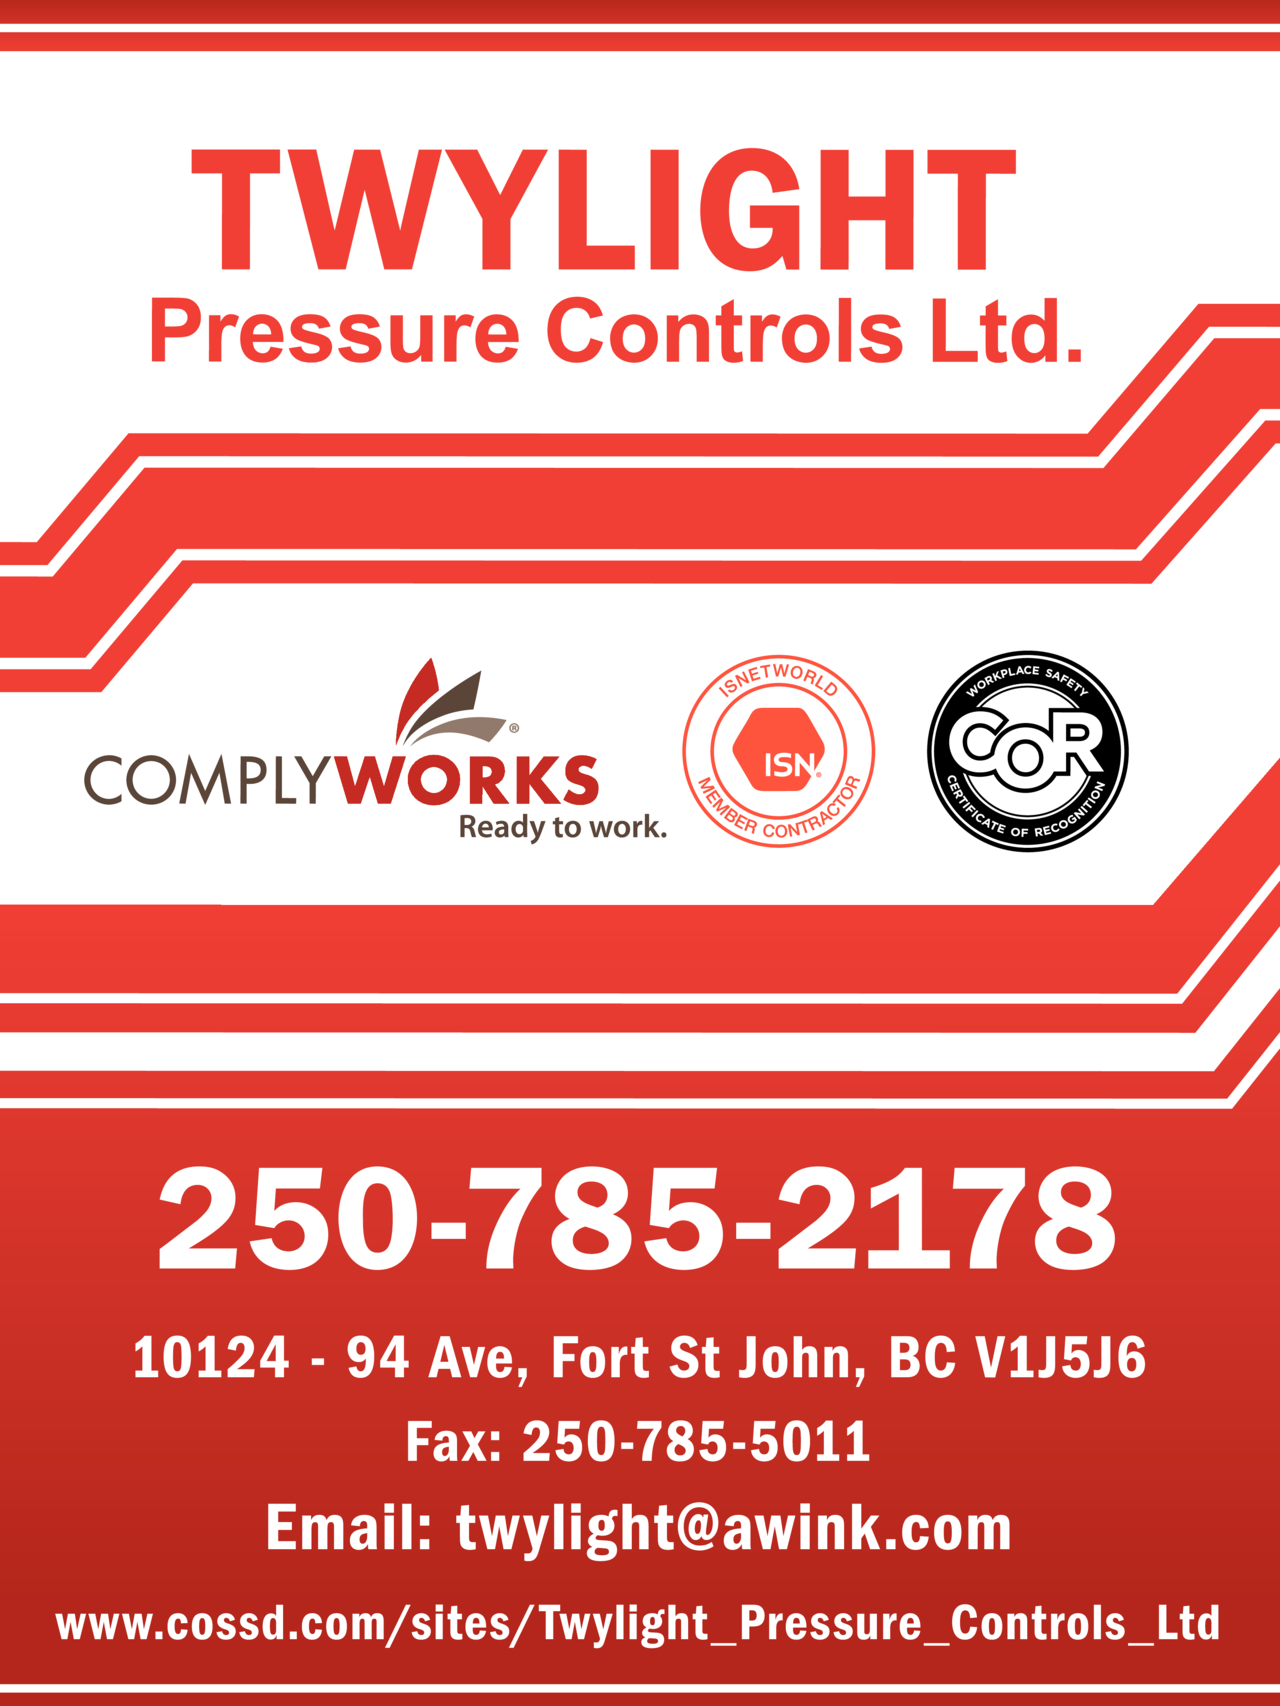 Advertise Banner for https://www.cossd.com/sites/Twylight_Pressure_Controls_Ltd